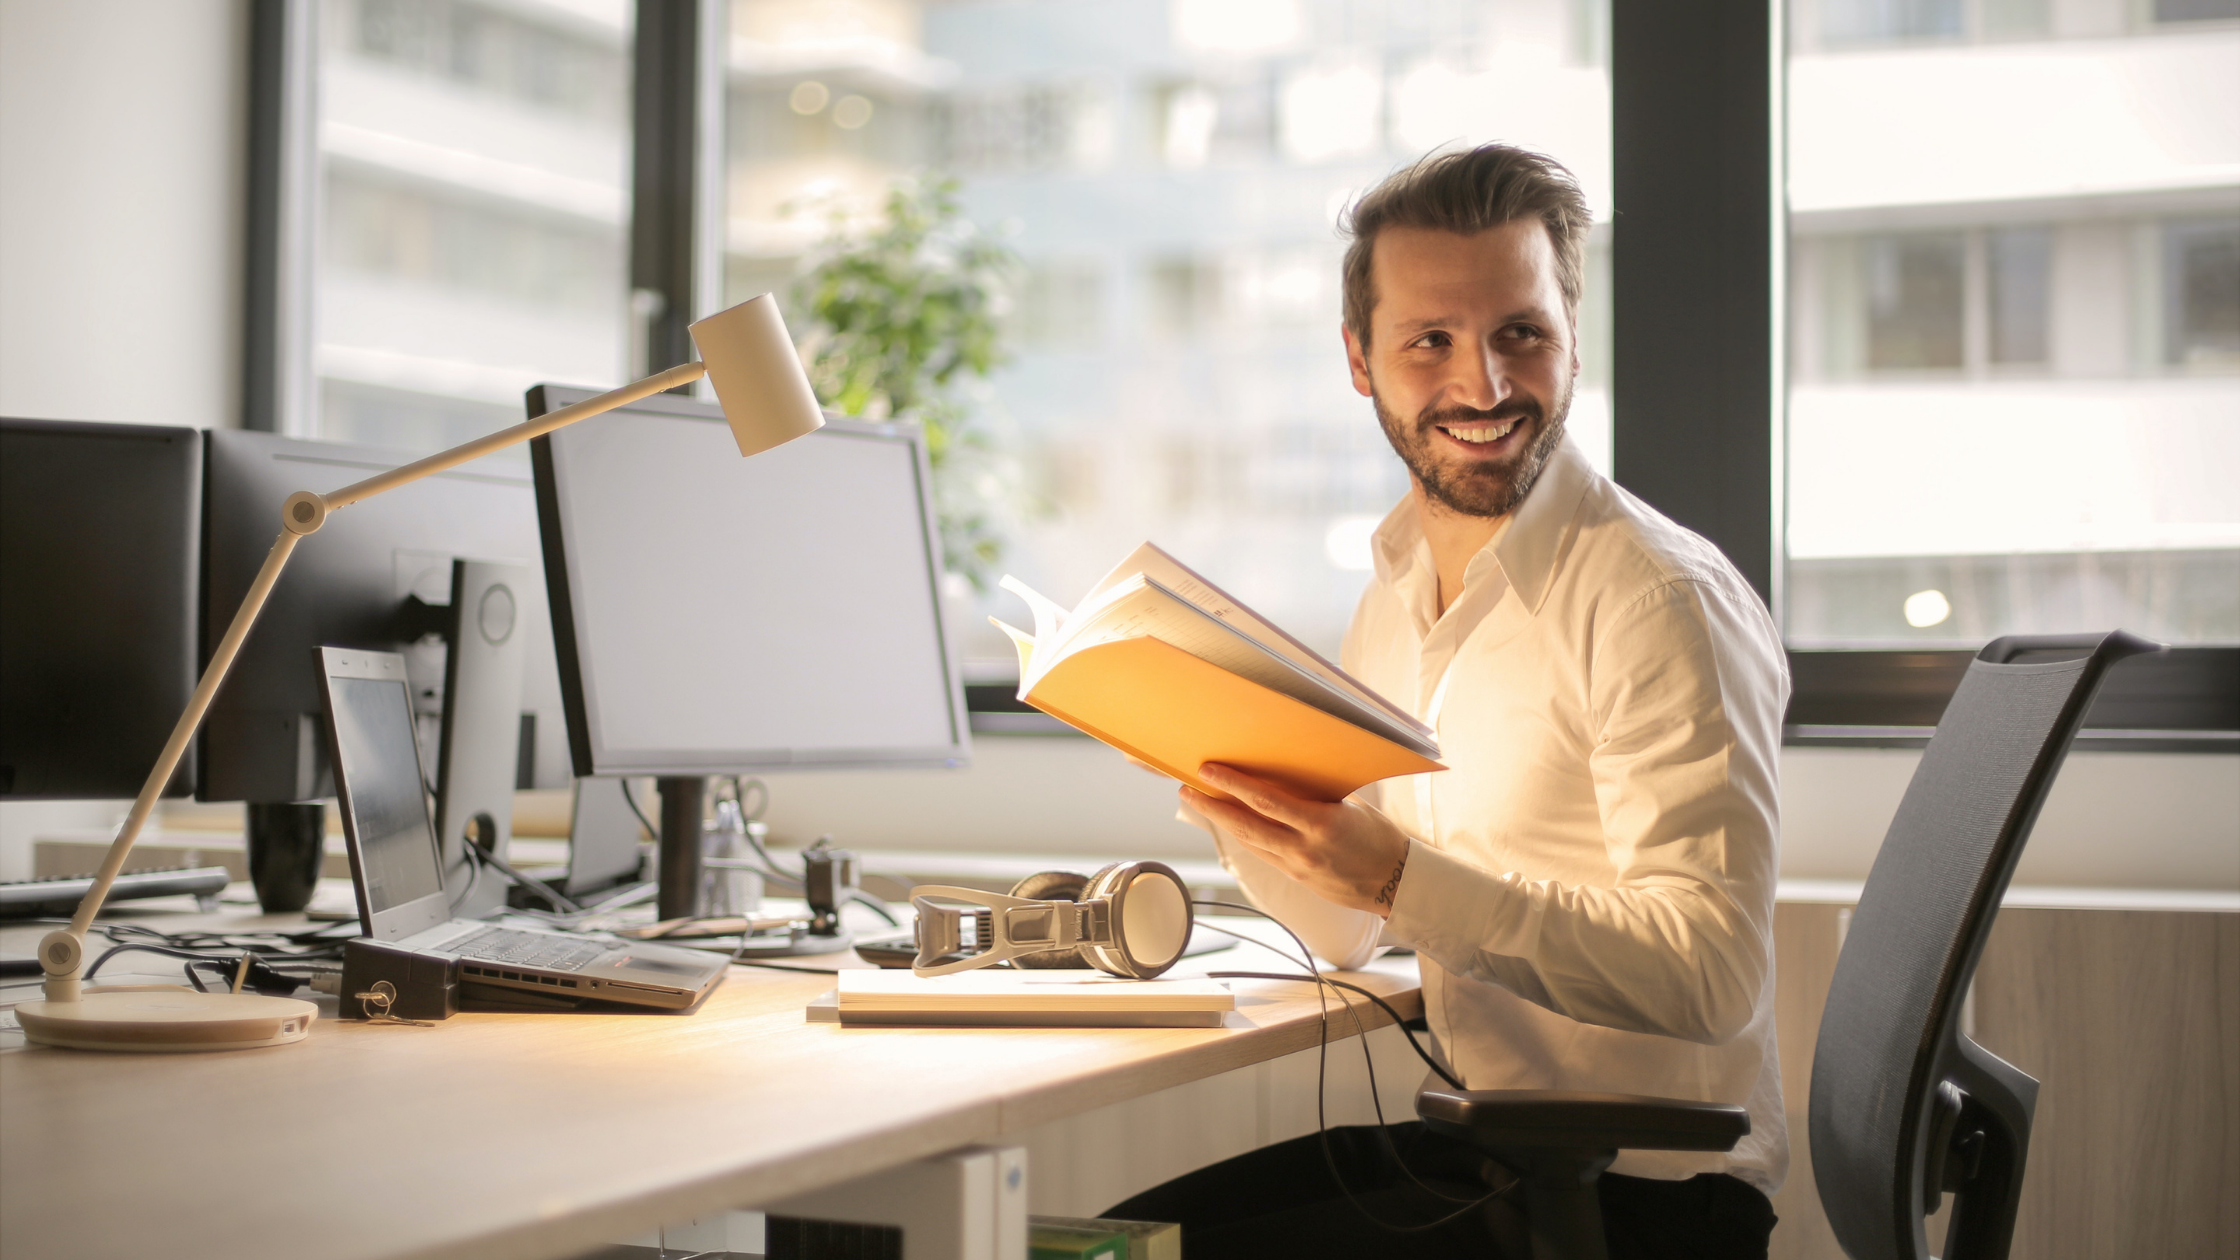 A man working at his desk who seems happy.